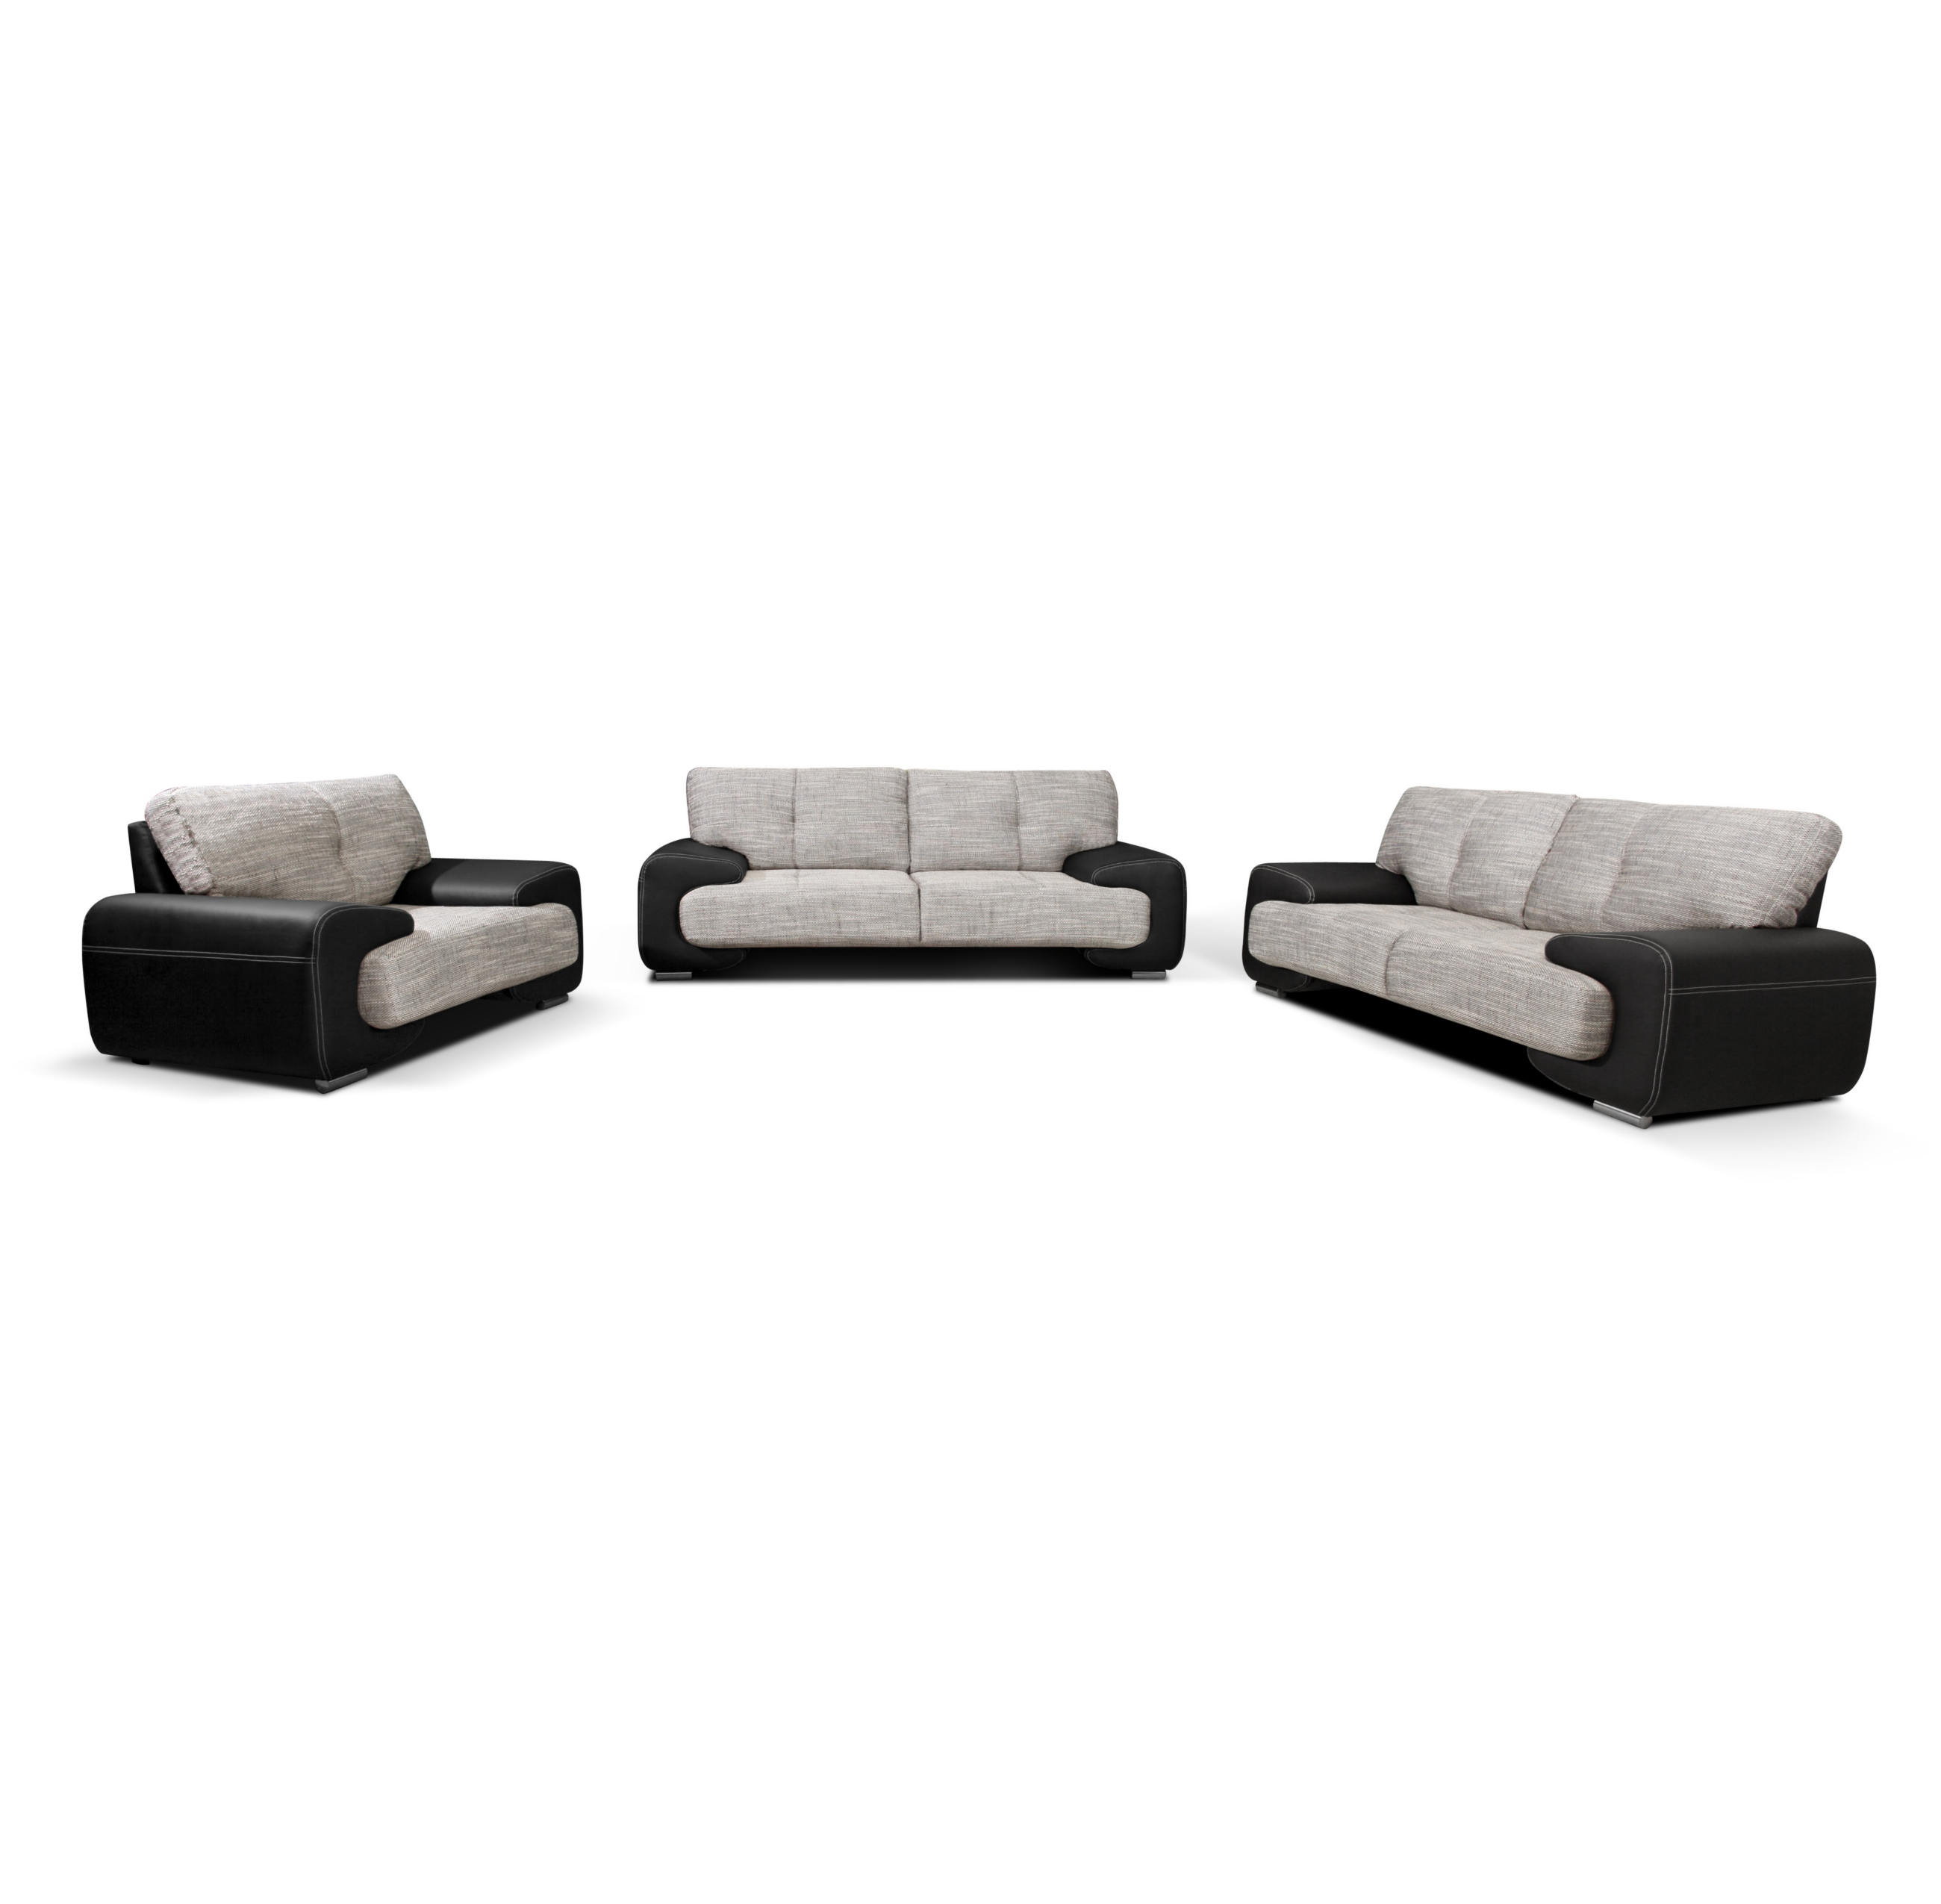 wohnlandschaft sofa set couch 3er 2er sessel 3 2 1 kunstleder schwarz lorento ebay. Black Bedroom Furniture Sets. Home Design Ideas